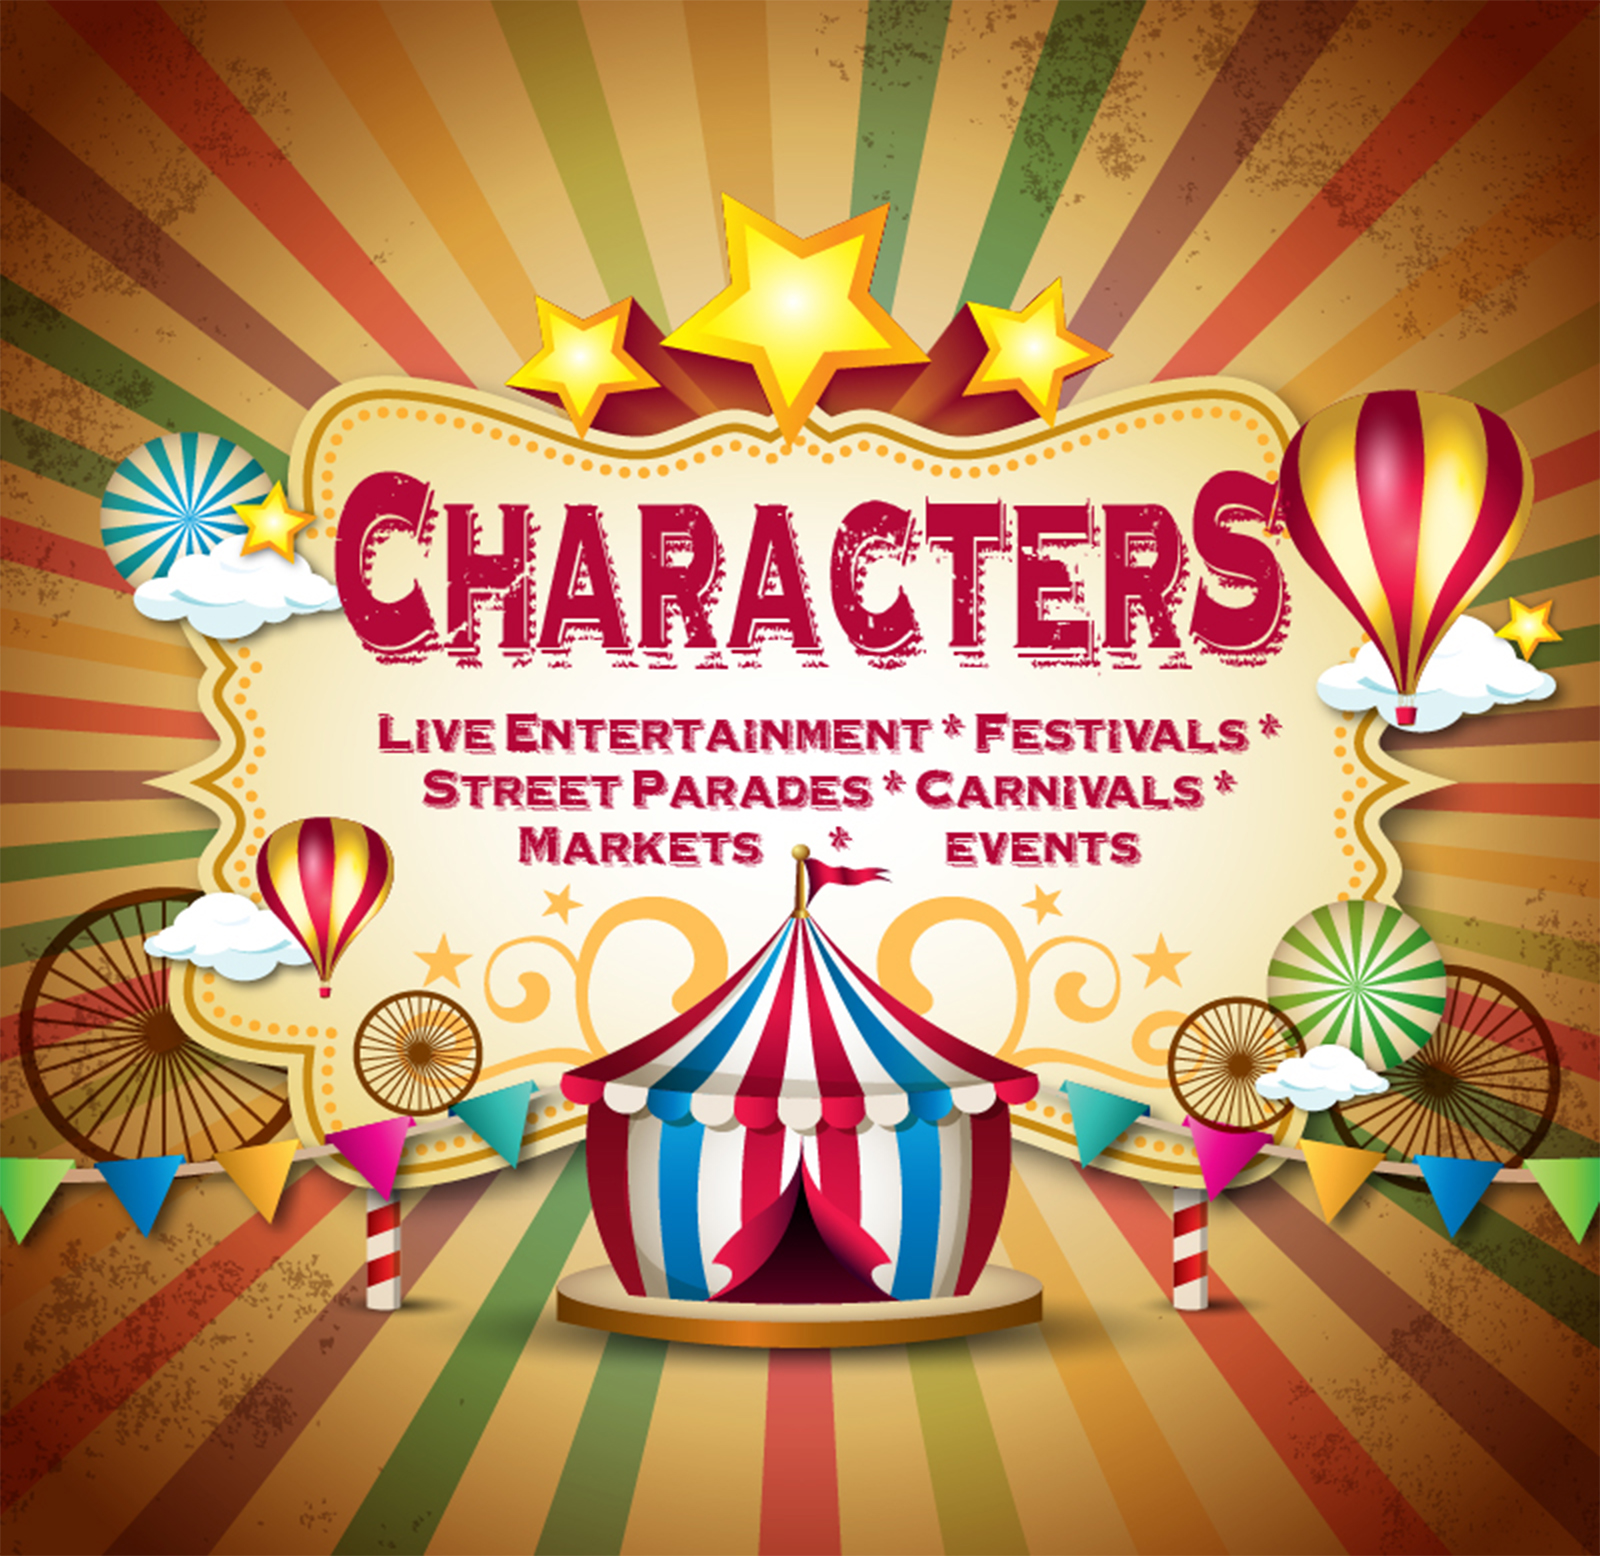 Live Entertainment, Street Parades, Carnivals, Festivals, Markets, Events, Character Costumes